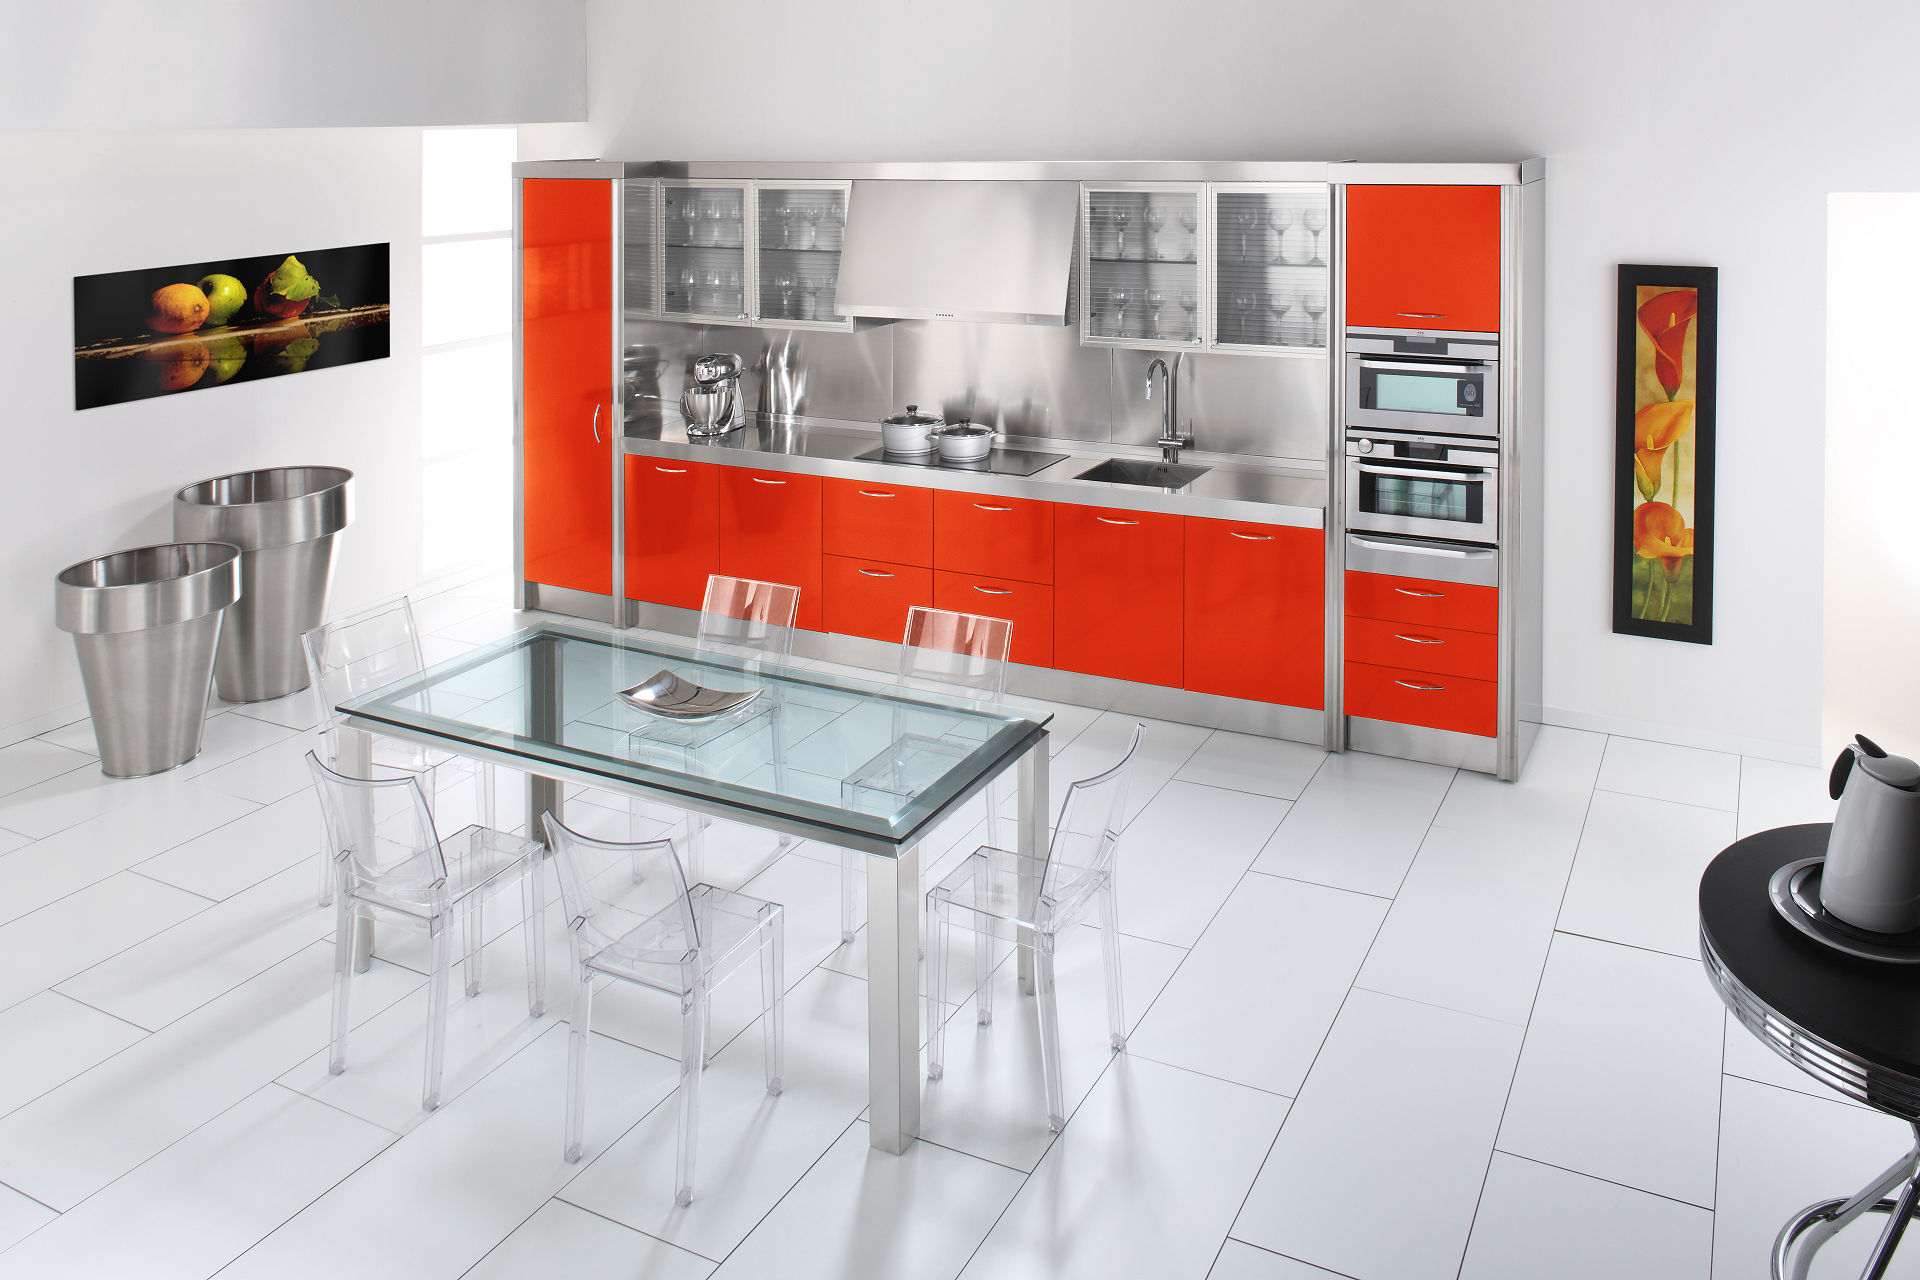 Arca Cucine Italy - Domestic stainless steel kitchens - 15 - Essex - Rosso